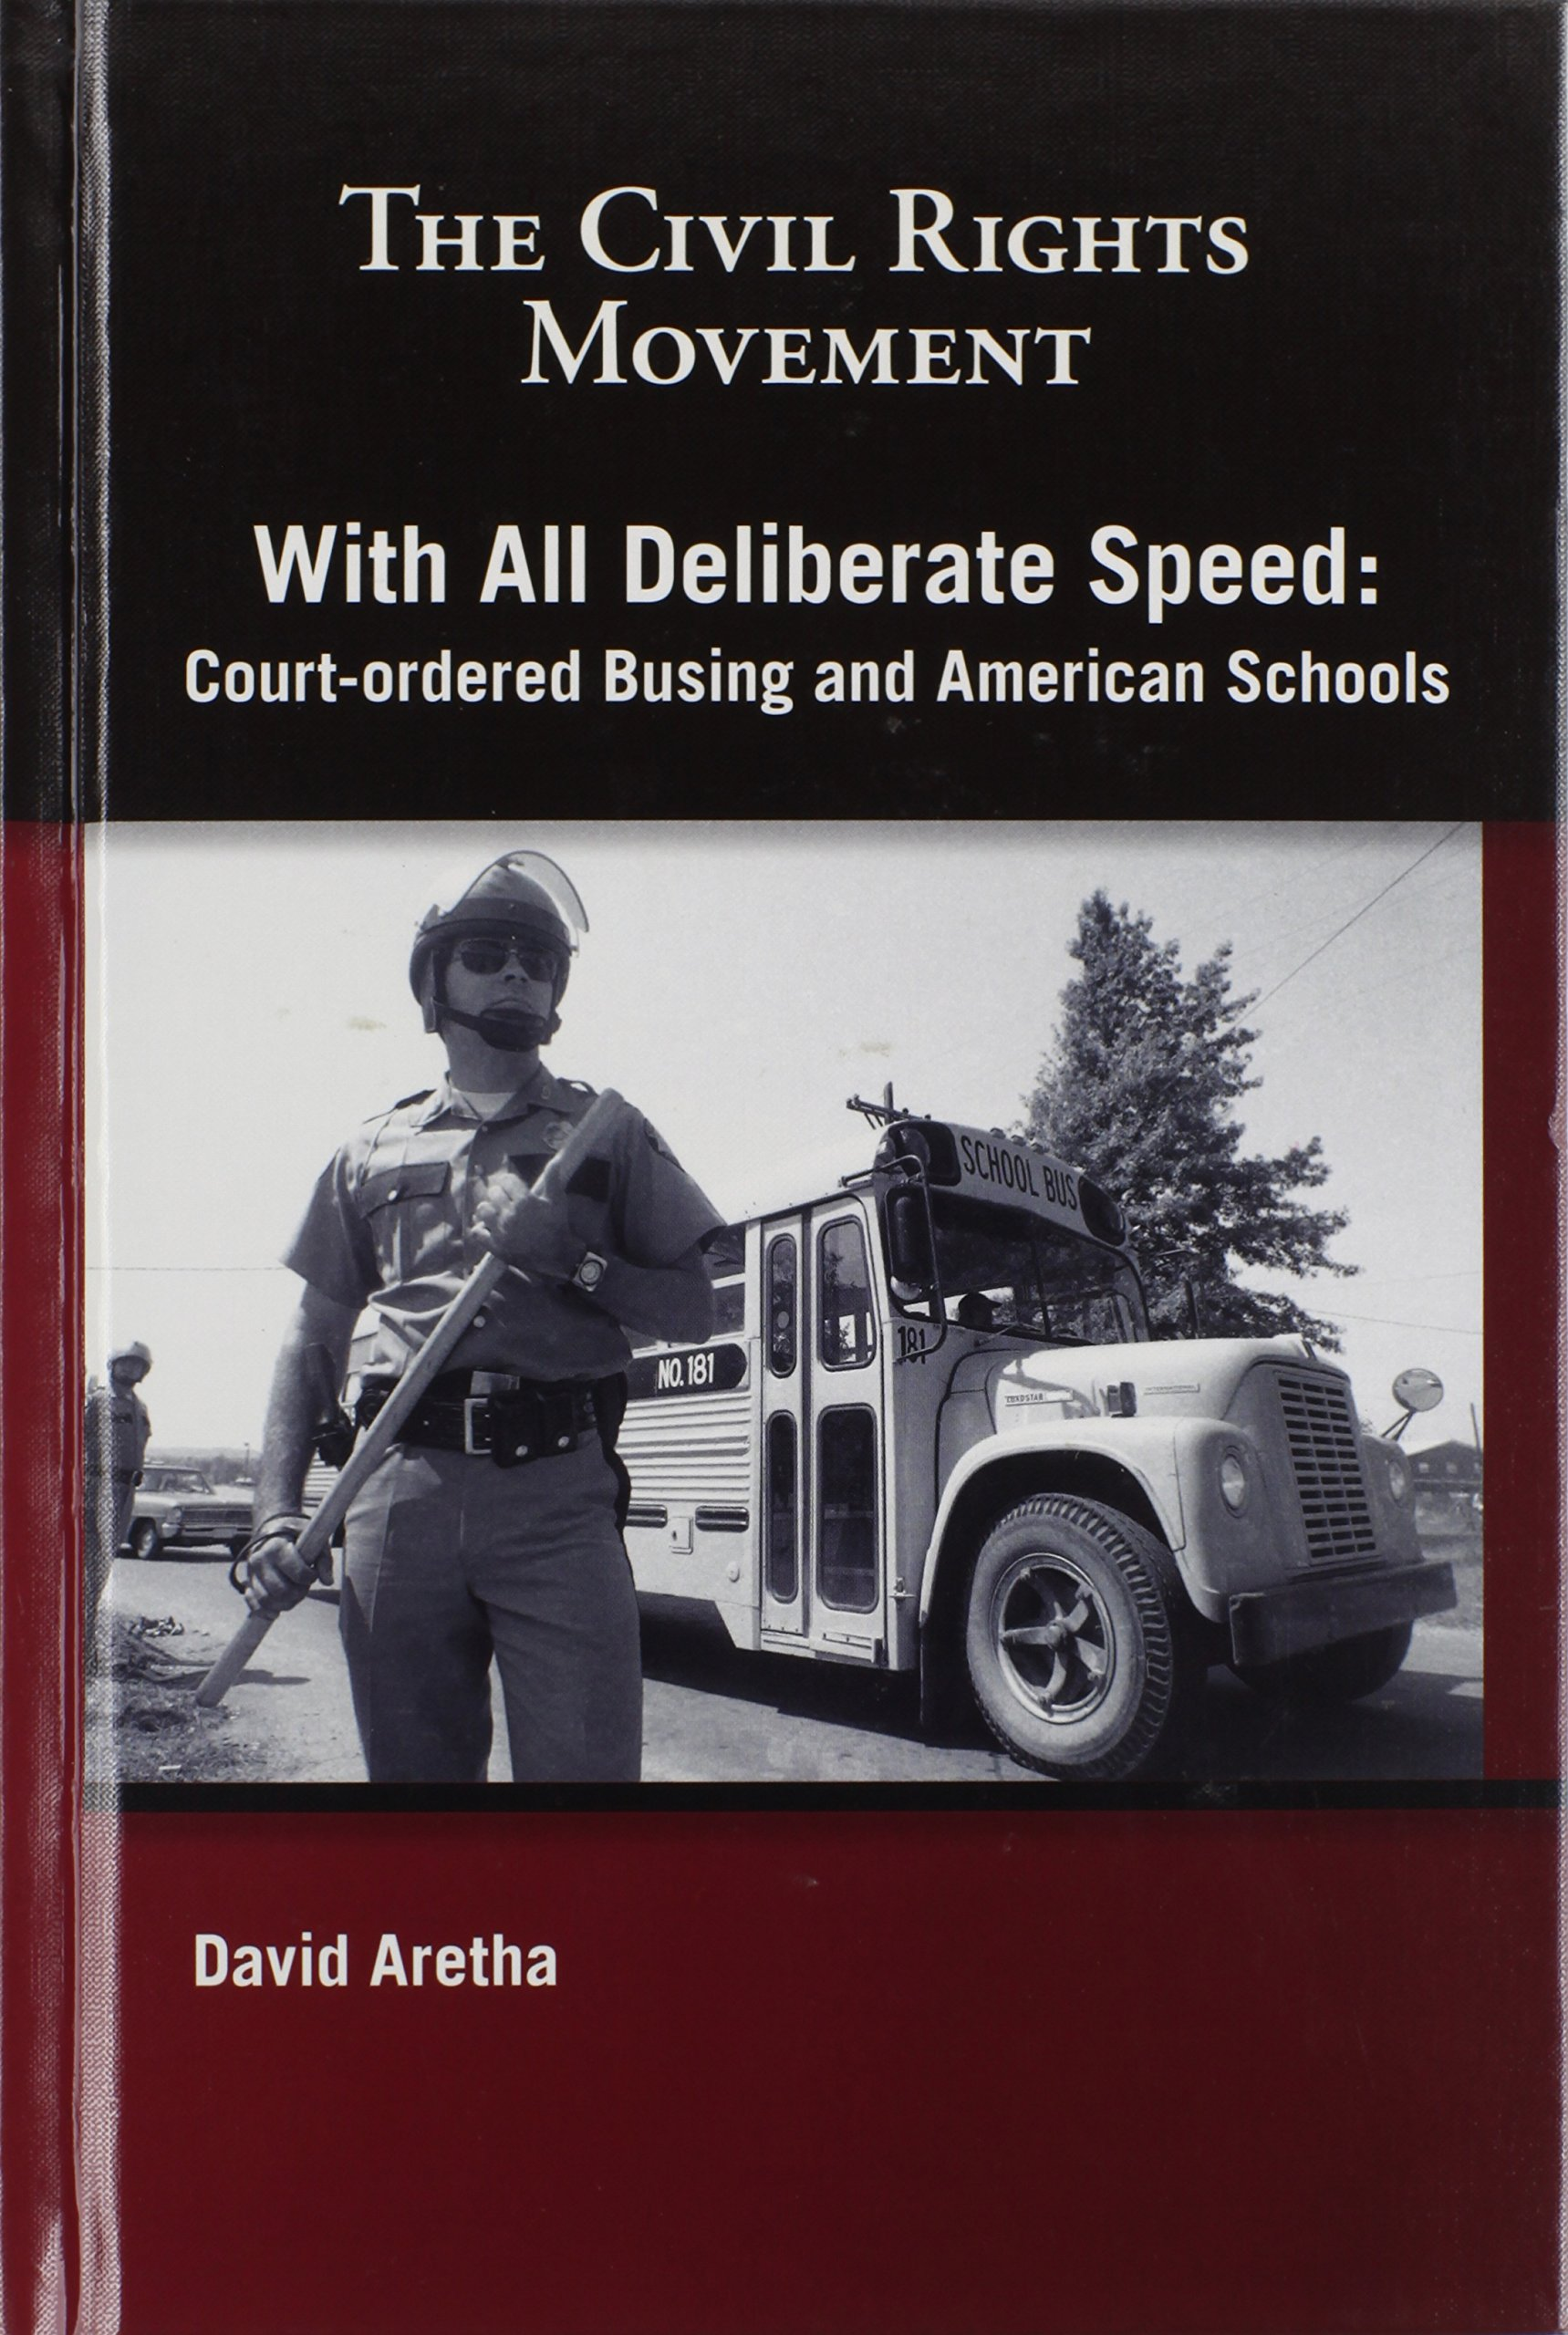 With All Deliberate Speed: Court-ordered Busing and American Schools (Civil Rights Movement)